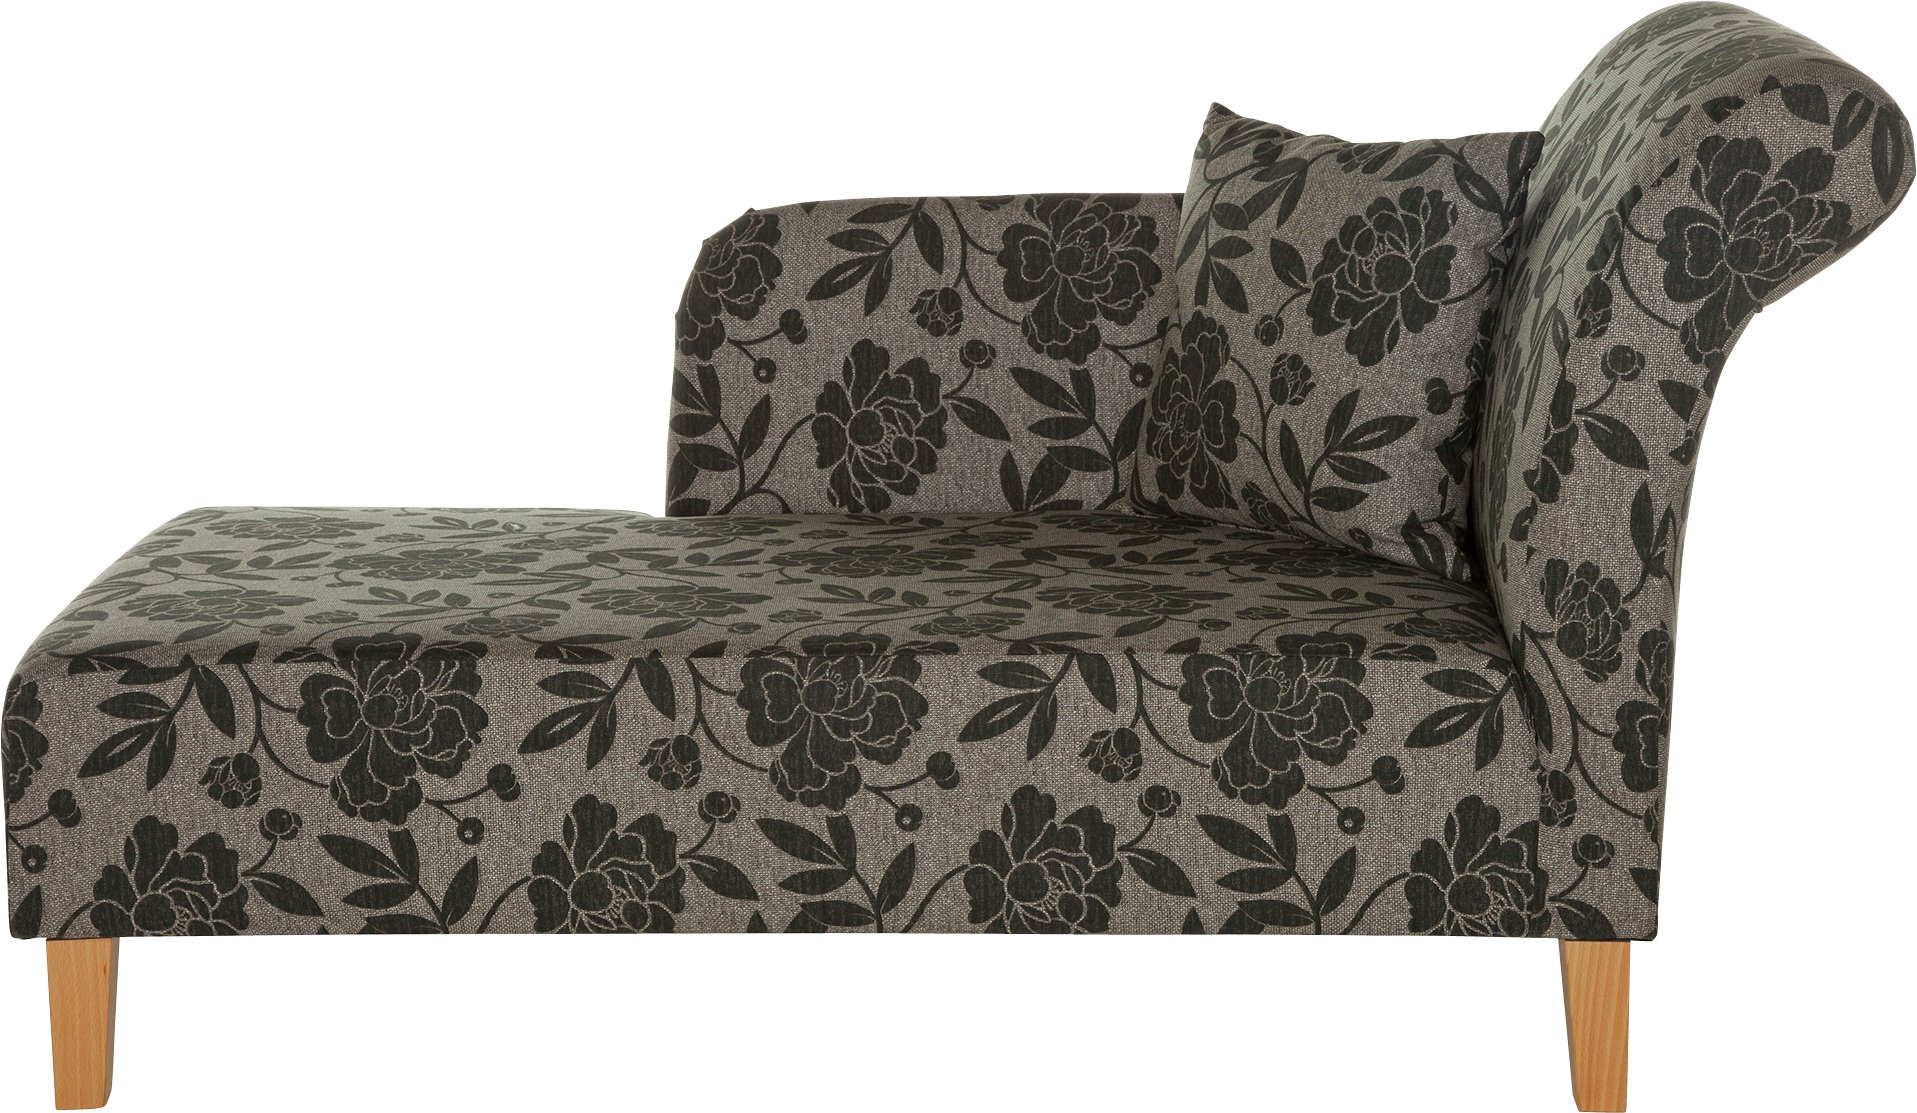 HOME Floral Fabric Chaise Longue - Charcoal  sc 1 st  Argos : chaise lounge argos - Sectionals, Sofas & Couches